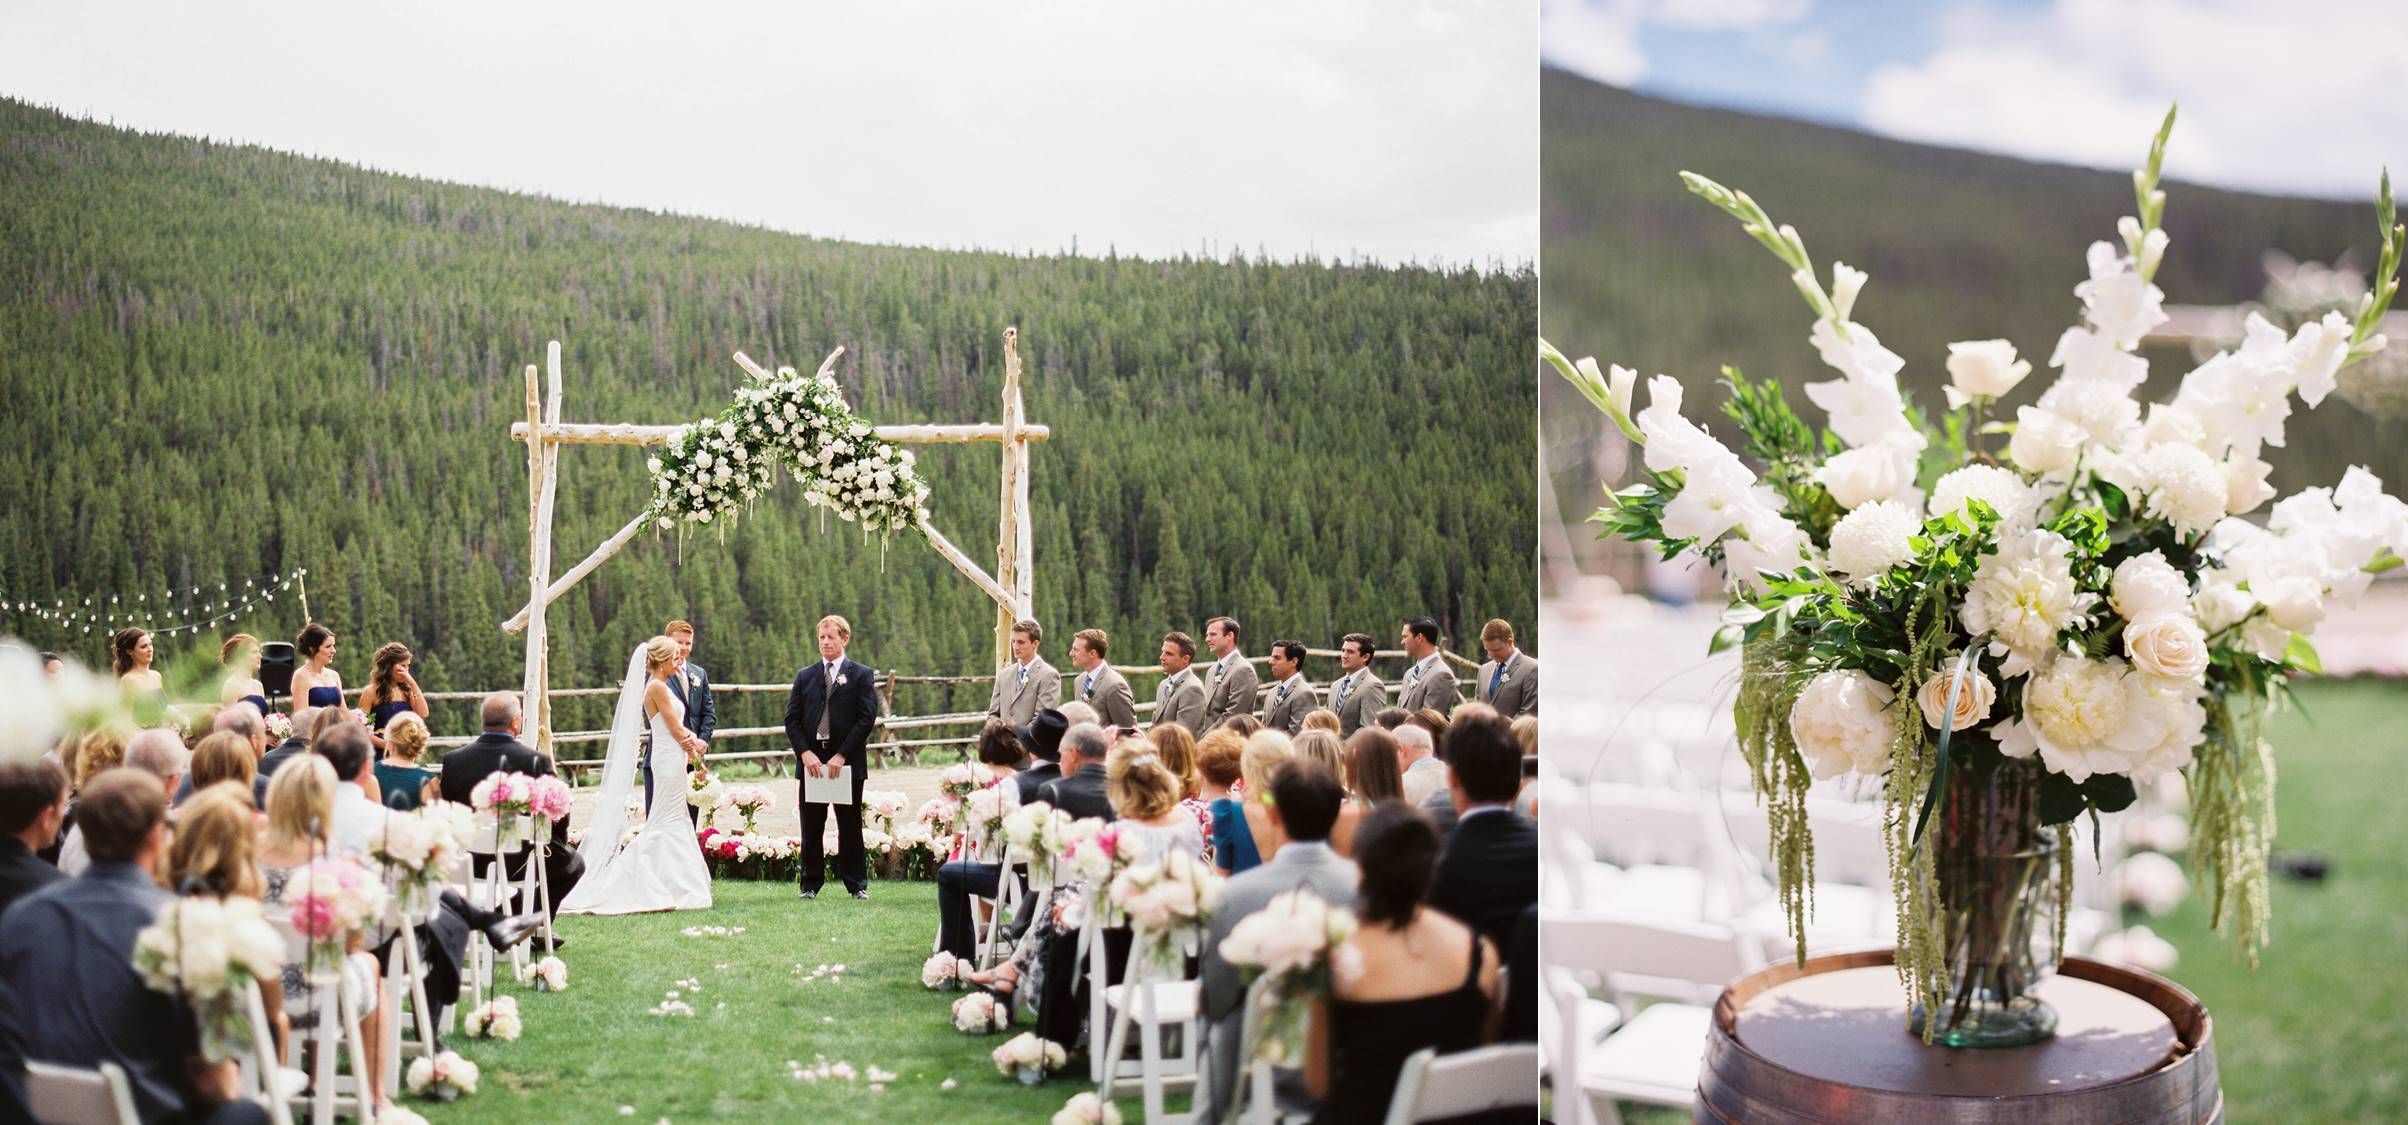 Luxury Breckenridge Wedding.jpg